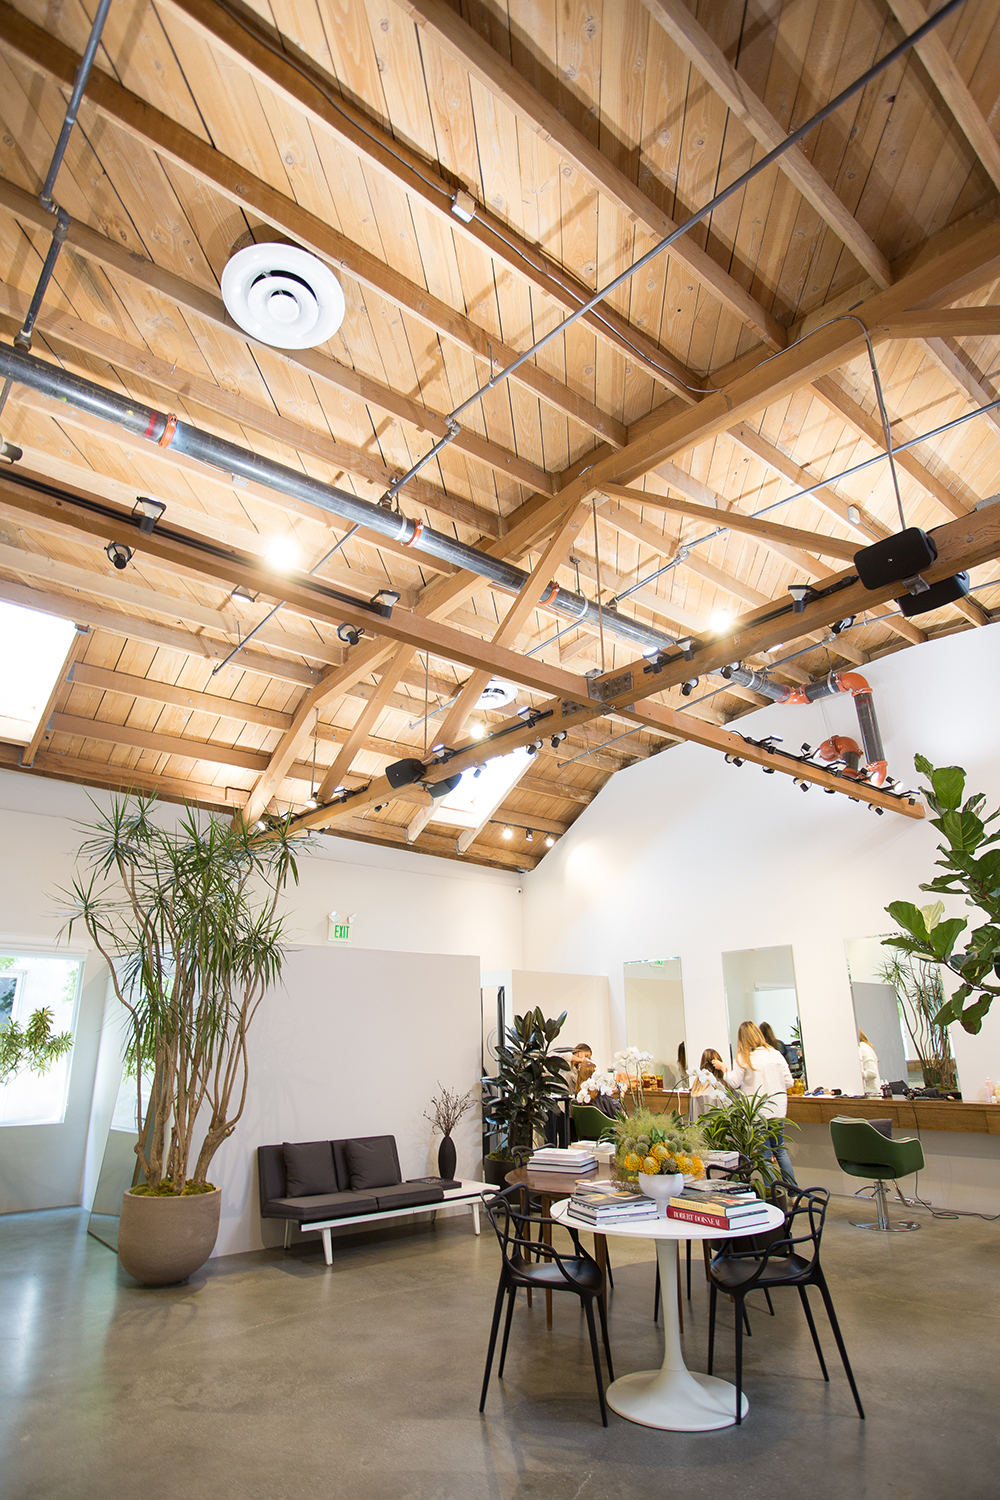 Loft 647 is a favorite among celebrities and A-Listers in Hollywood.